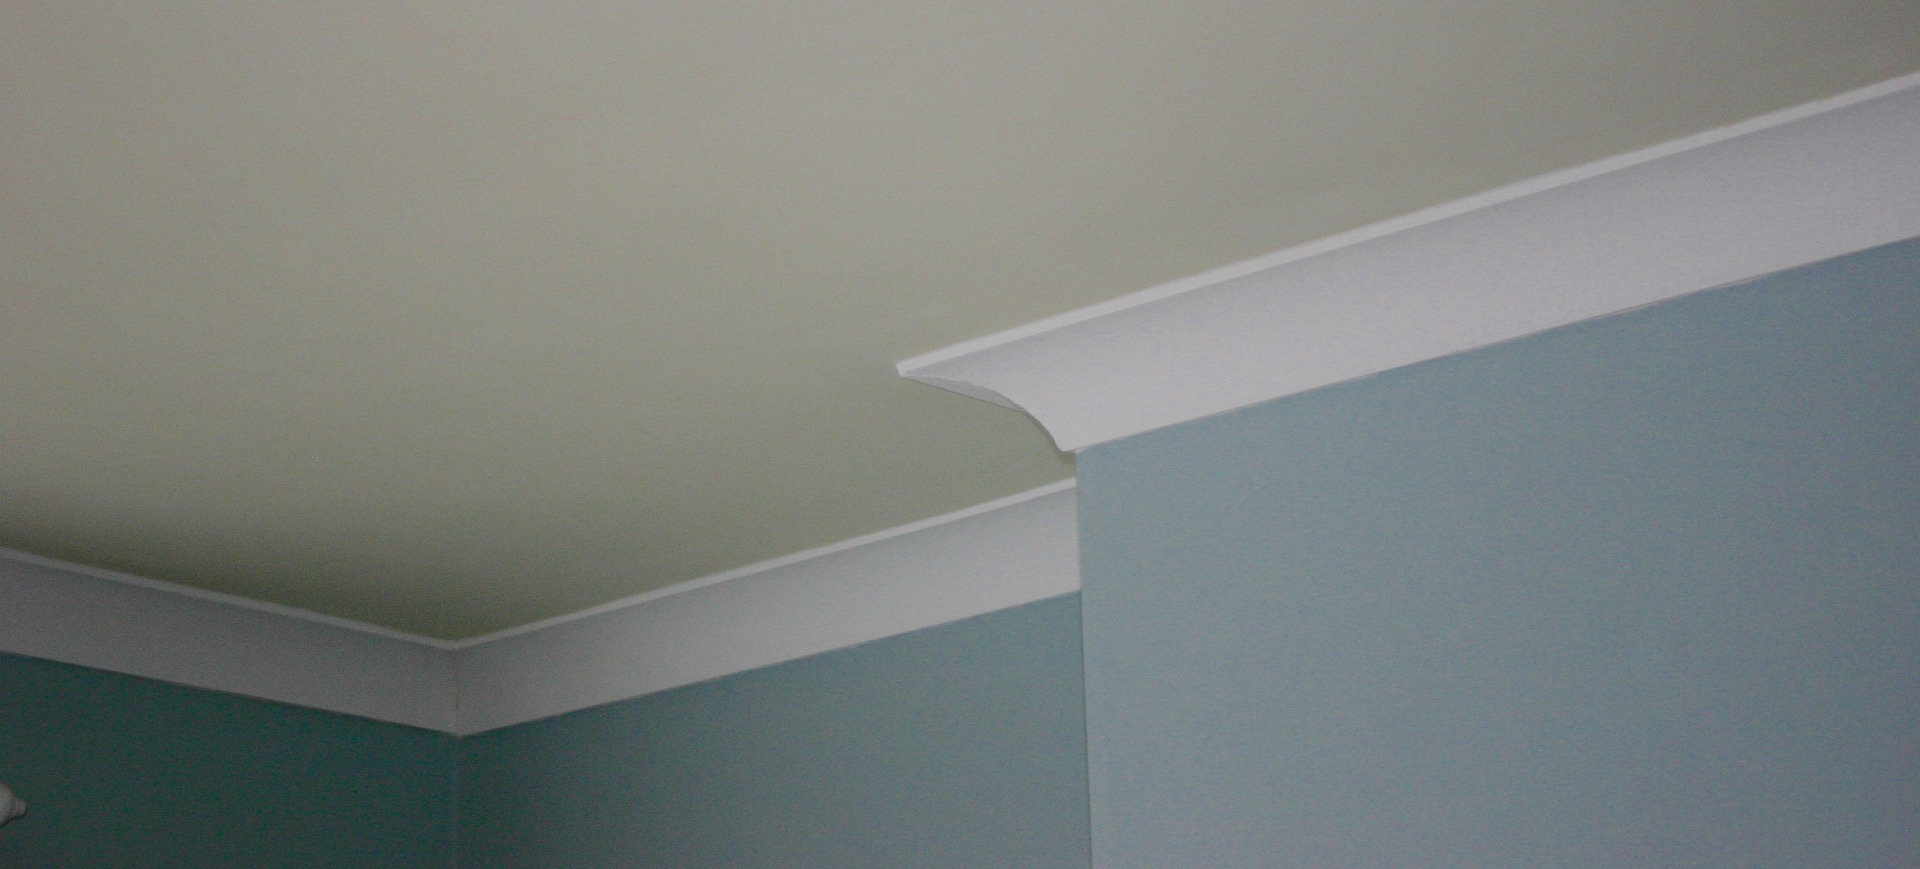 Kitchen Ceiling Paint Color